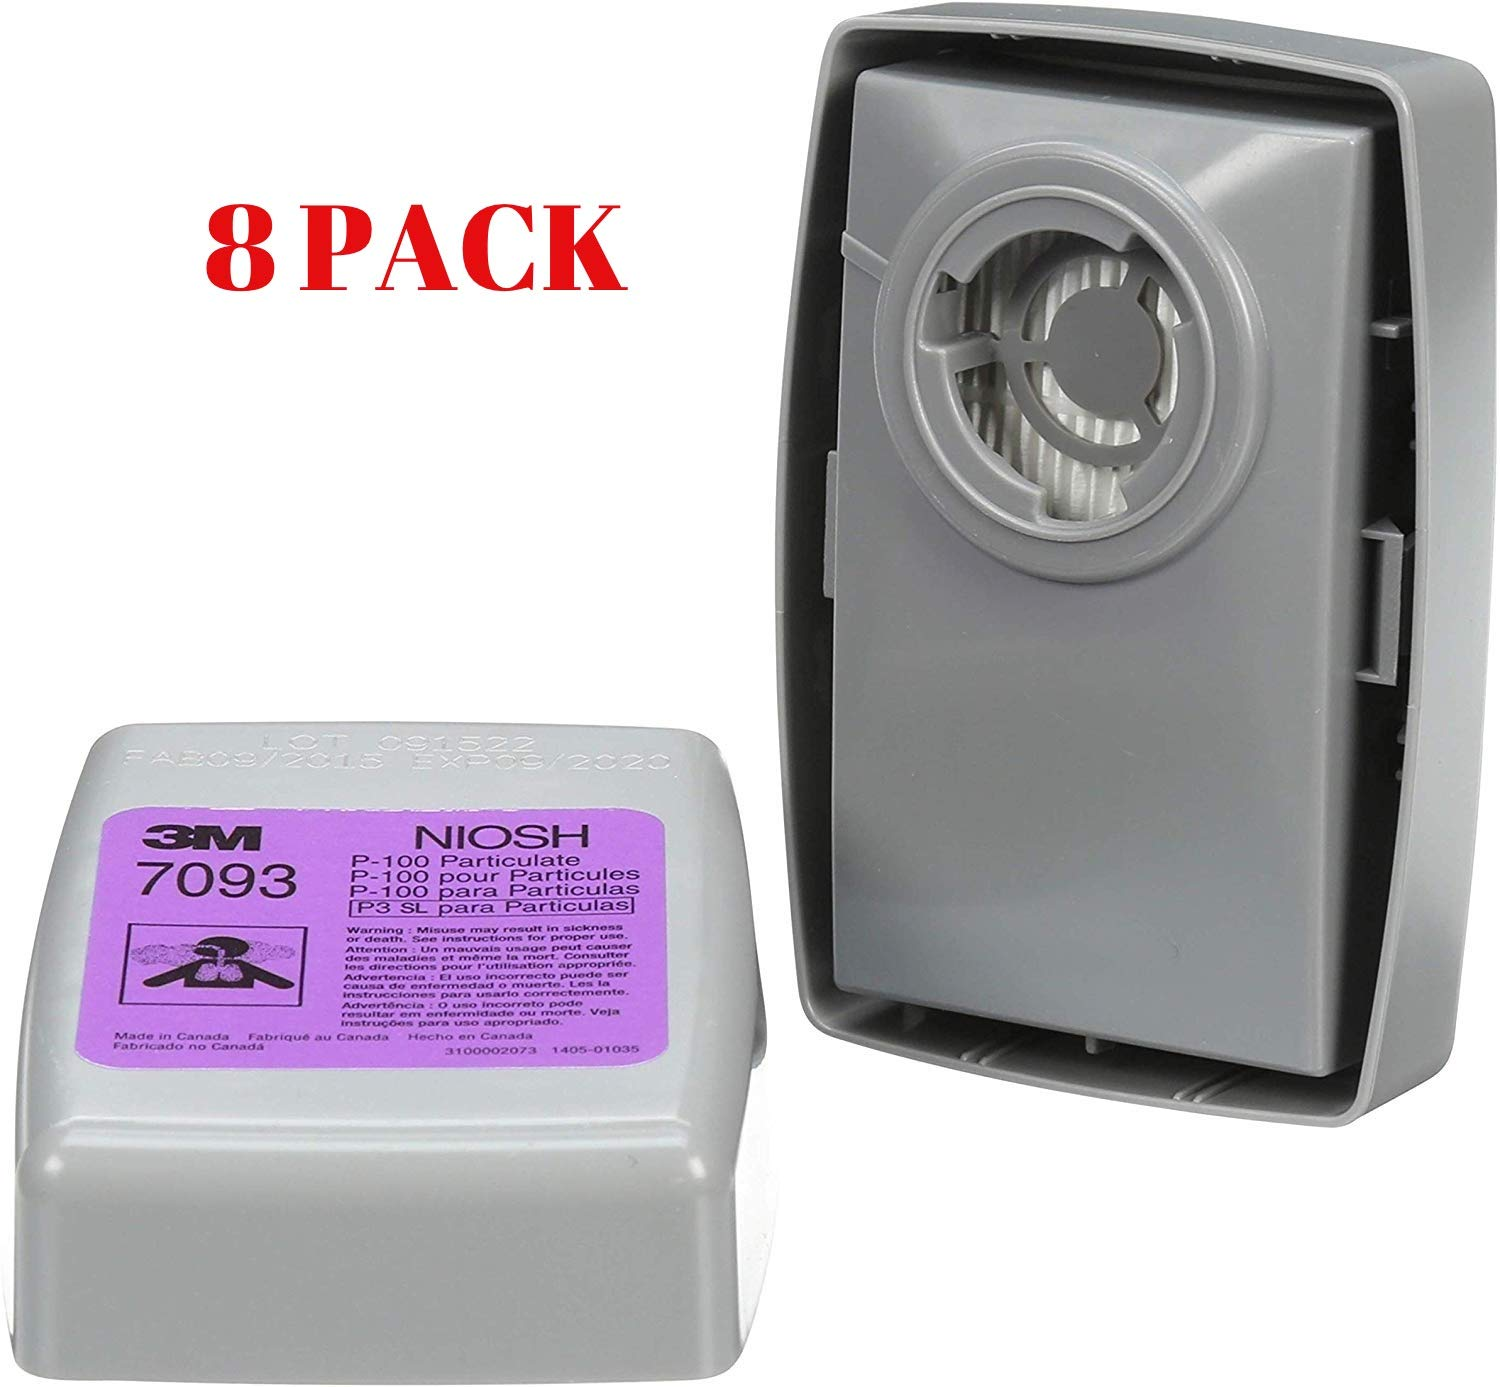 Pack of 8 3M Particulate Filter 7093B 8 Pack P100 Respiratory Protection